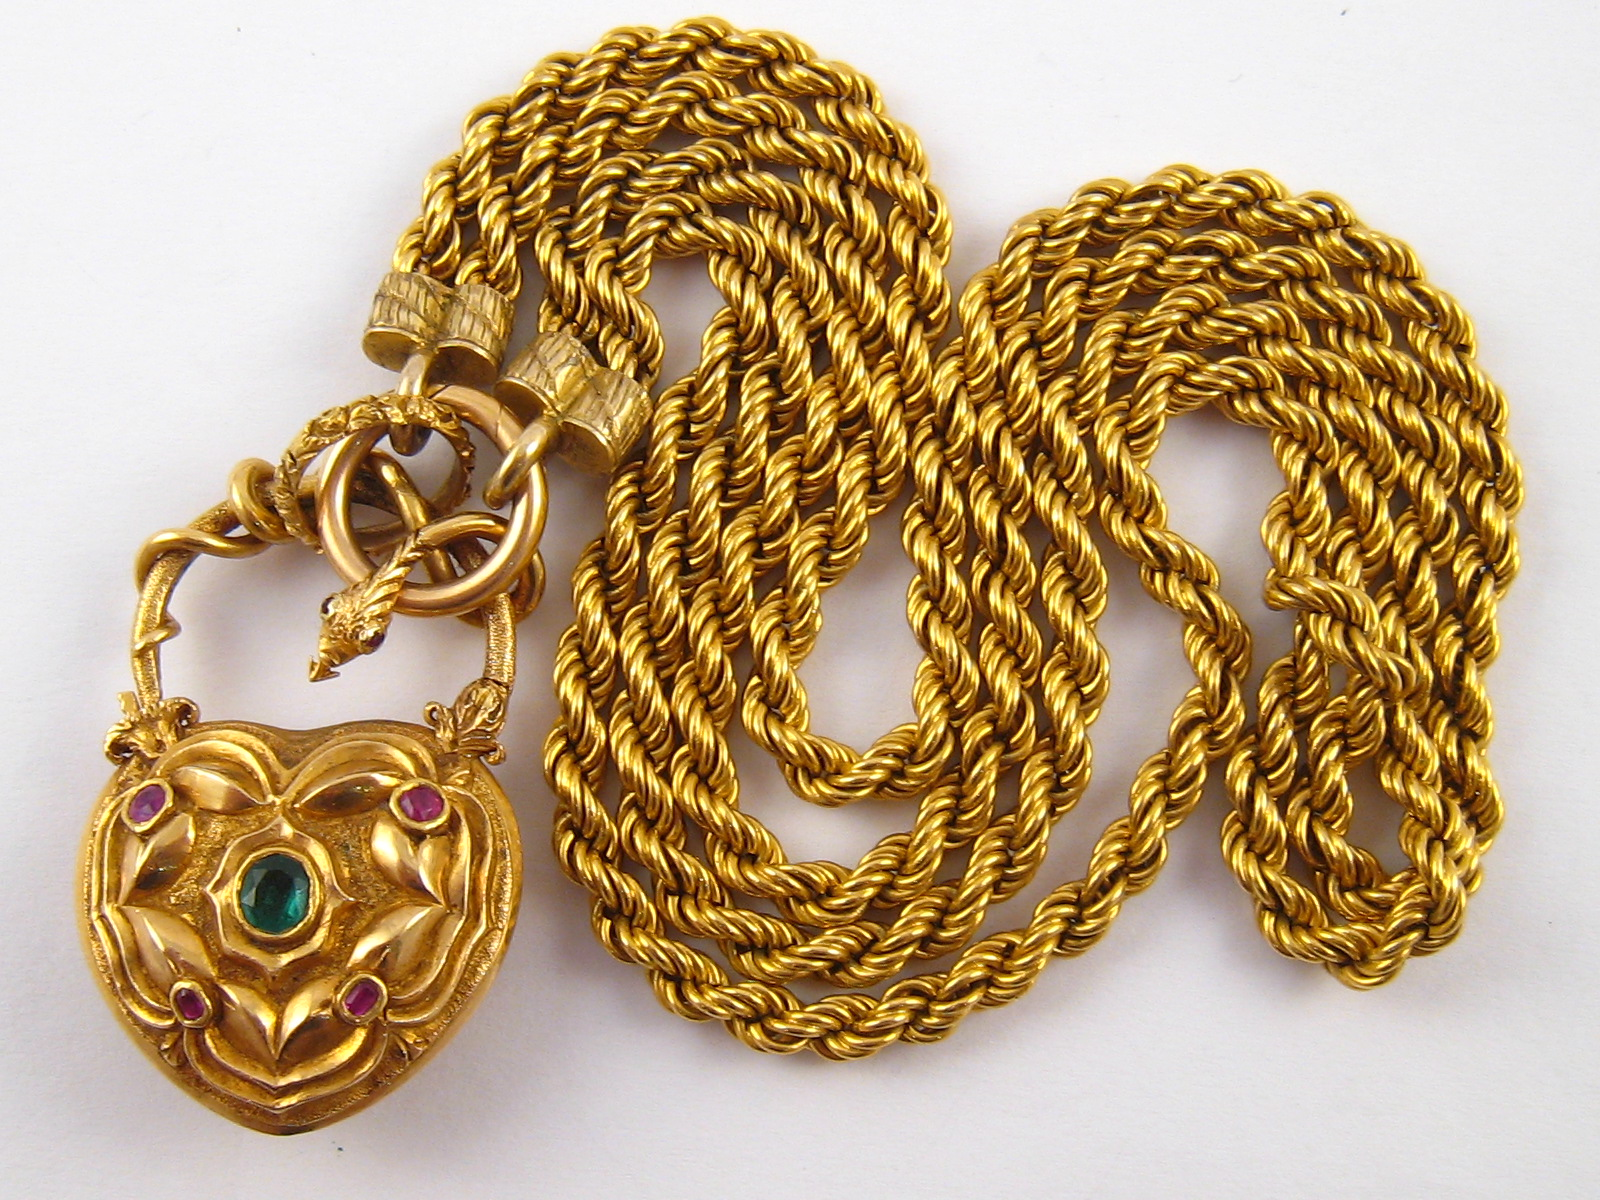 A fine antique gold necklace, the pendant symbolising love, designed as a heart shaped padlock